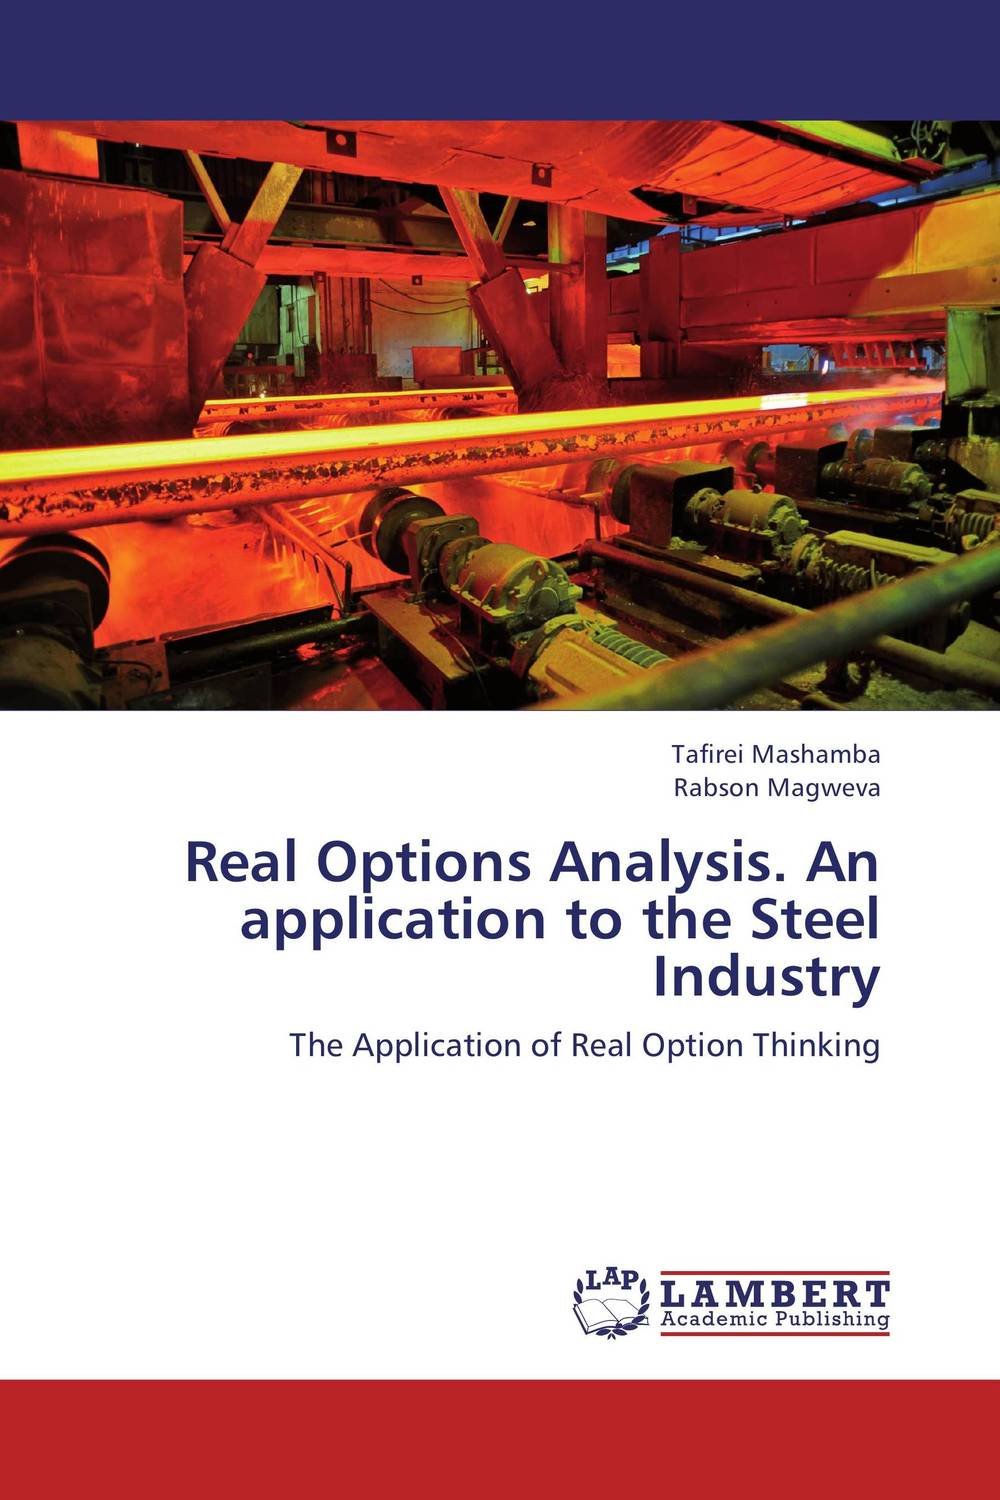 Real Options Analysis. An application to the Steel Industry